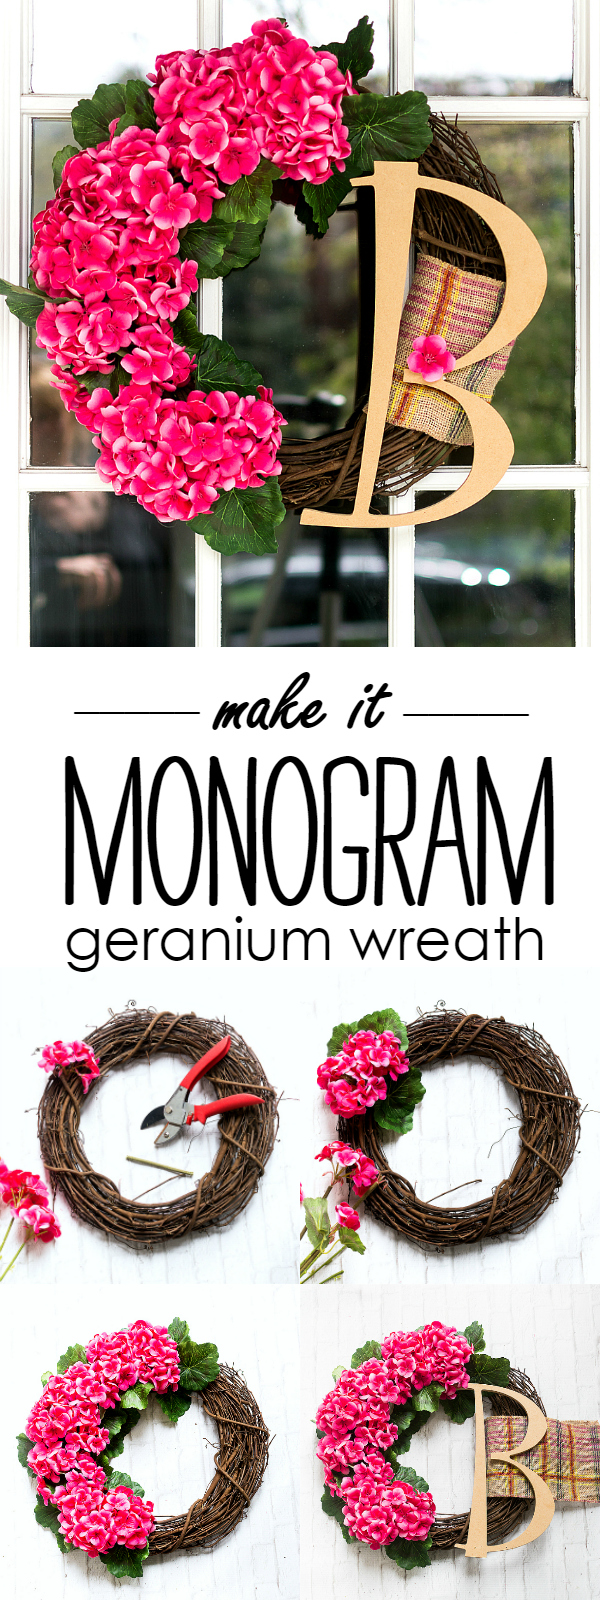 Monogram Wreath DIY - Geranium Wreath for Front Door DIY - How To Make a Wreath @itallstartedwithpaint.com